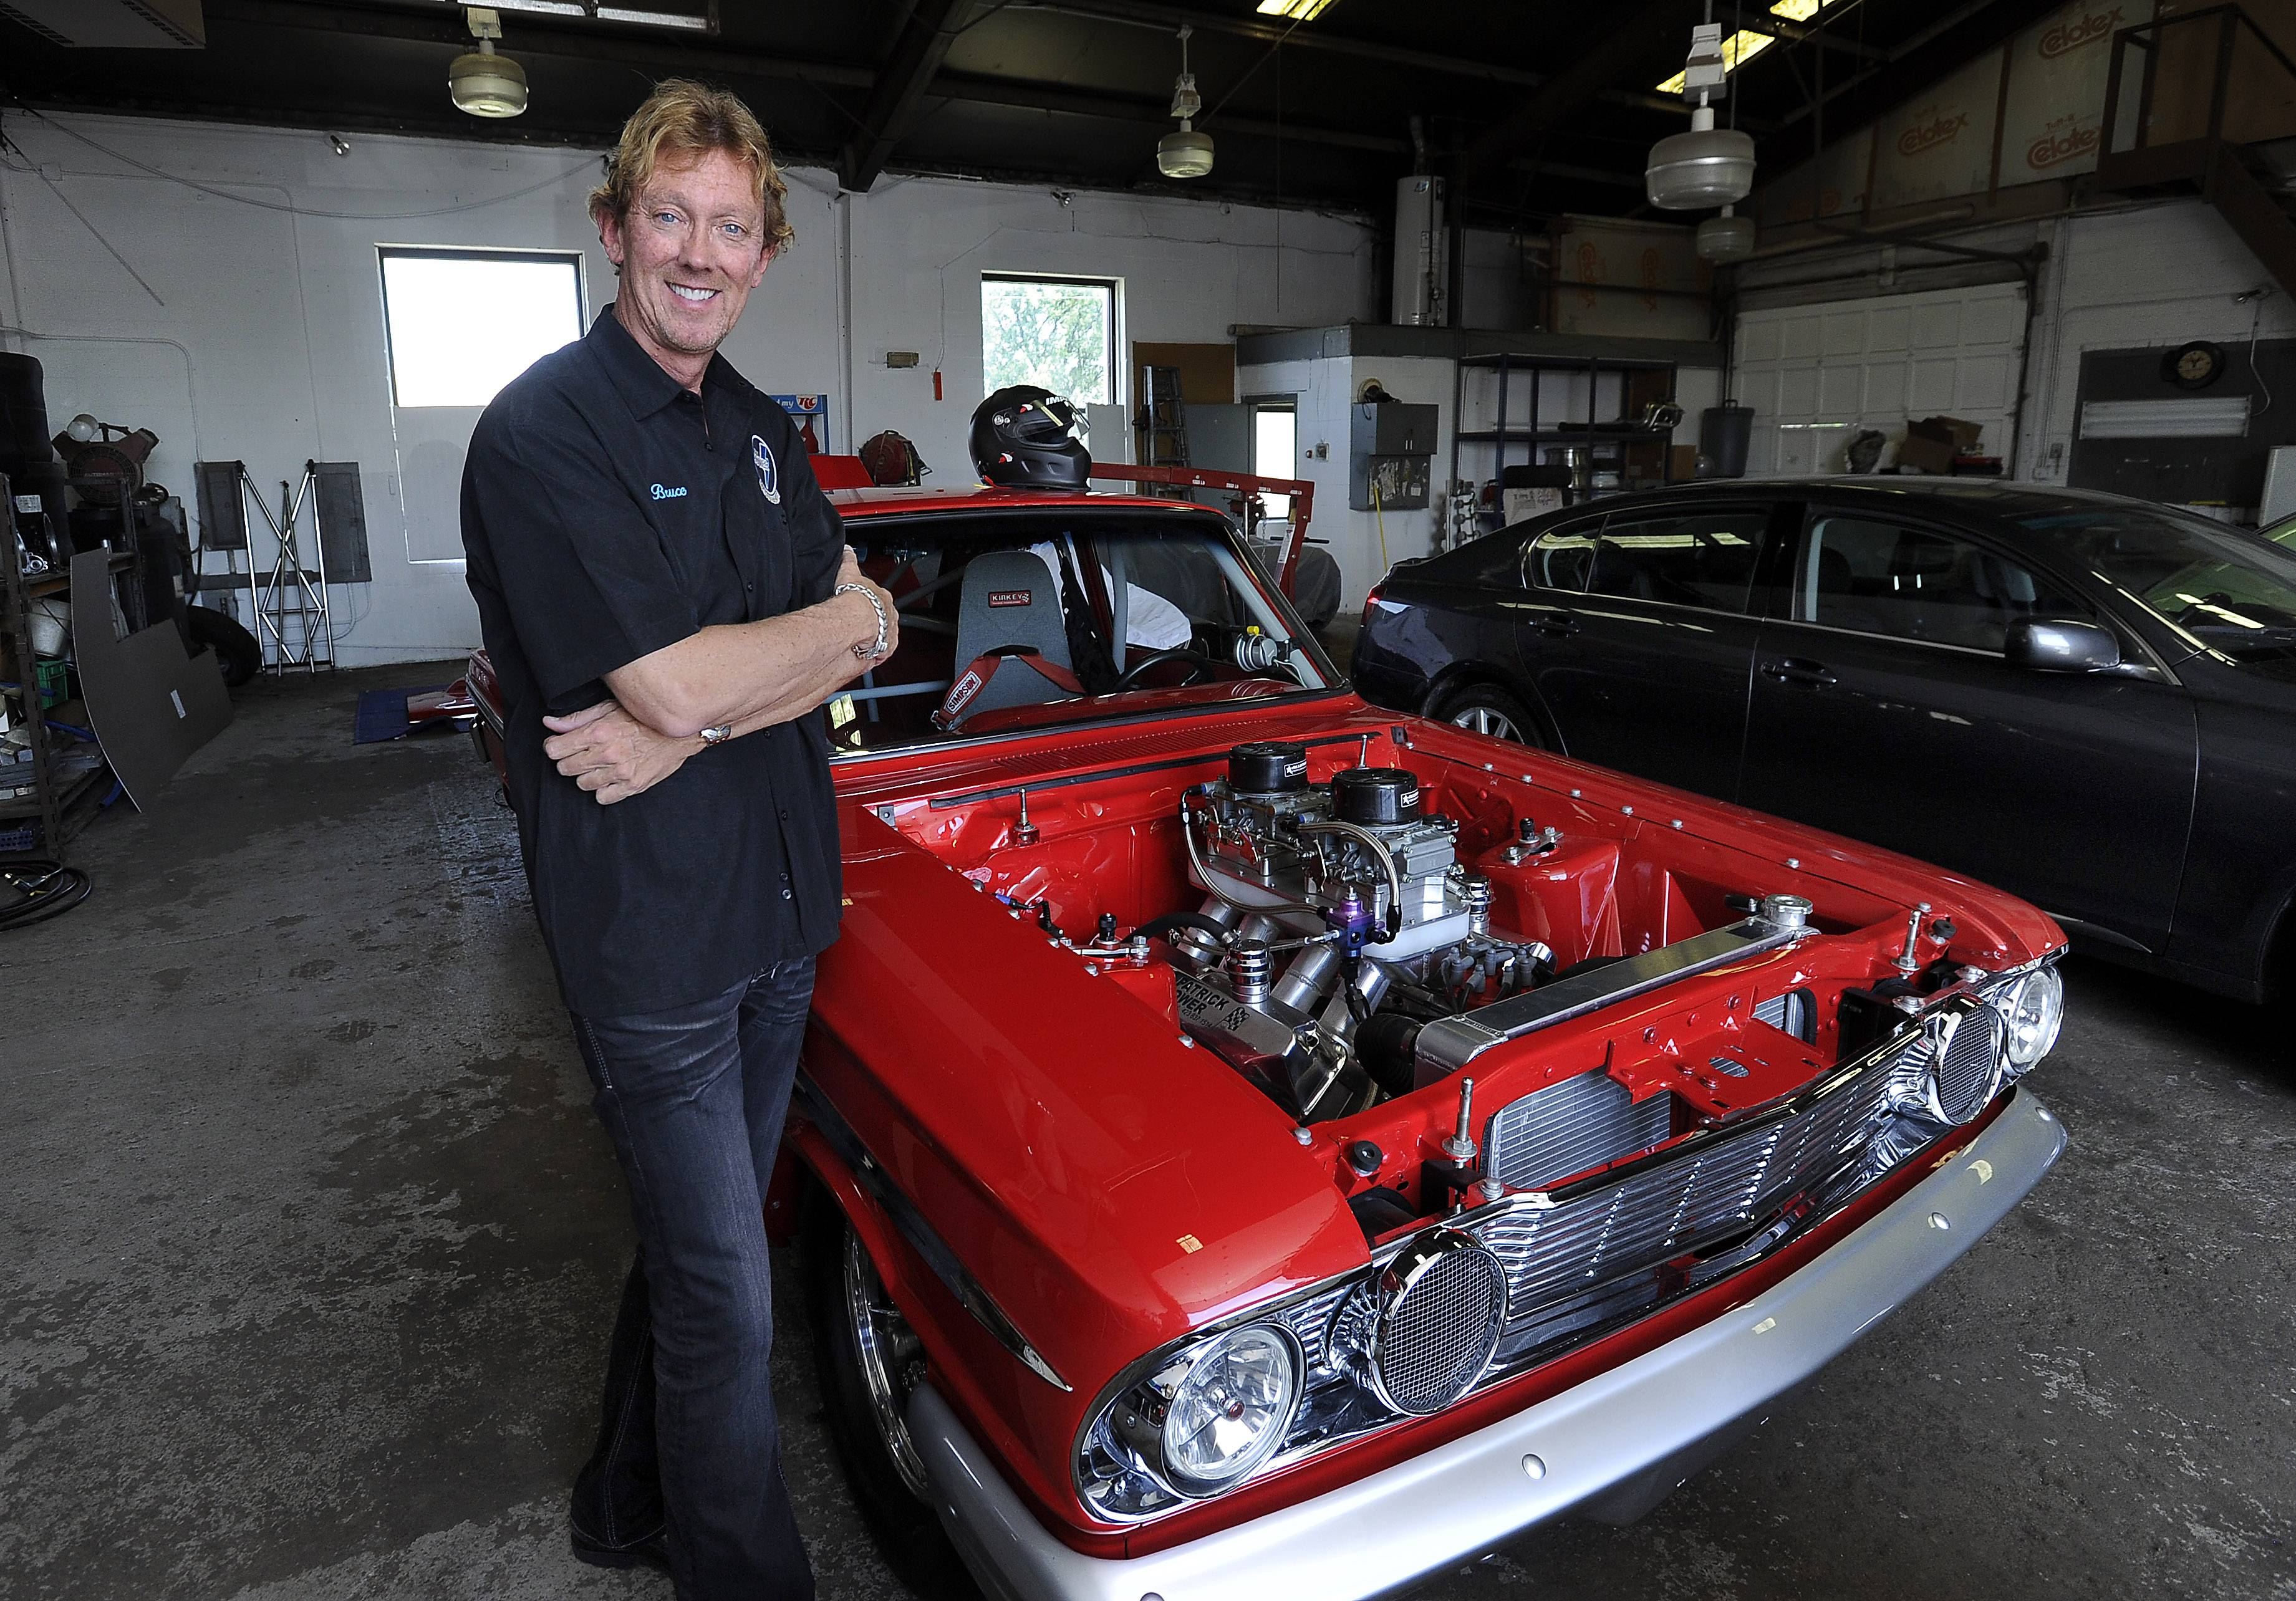 Bruce Jones and his 1964 Ford Thunderbolt Fairlane, one of only 100 built as a dual-purpose show car and racer.